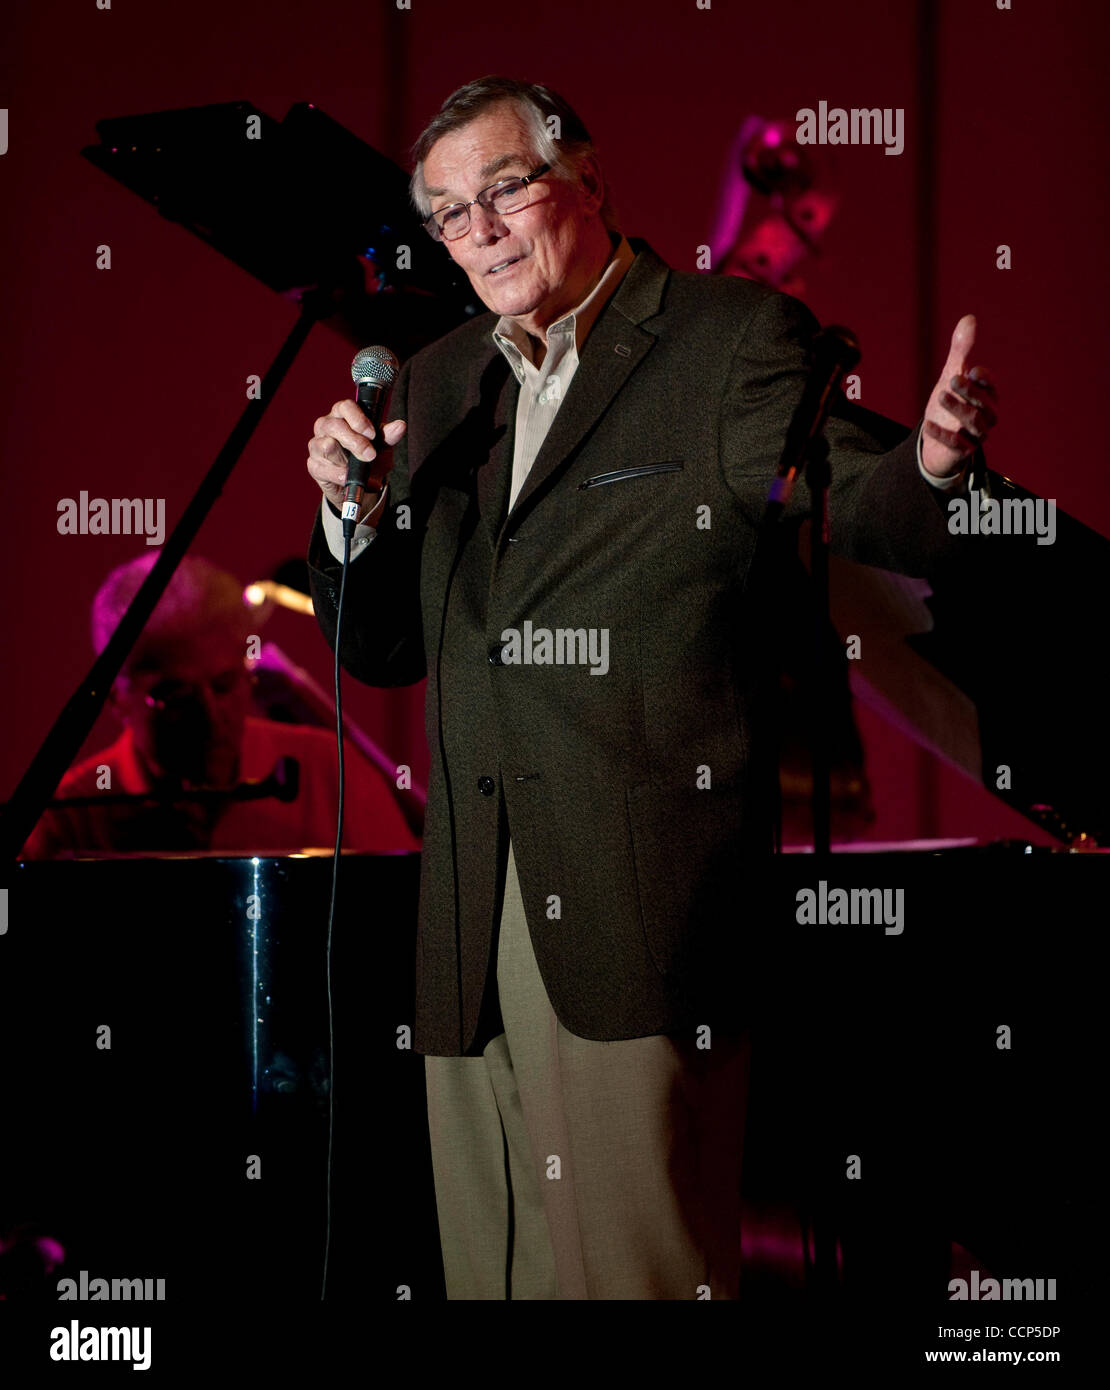 Oct. 22, 2010 - Los Angeles, CA, USA -  PETER MARSHALL performs during 'Come Swing with Me!', a four-day - Stock Image